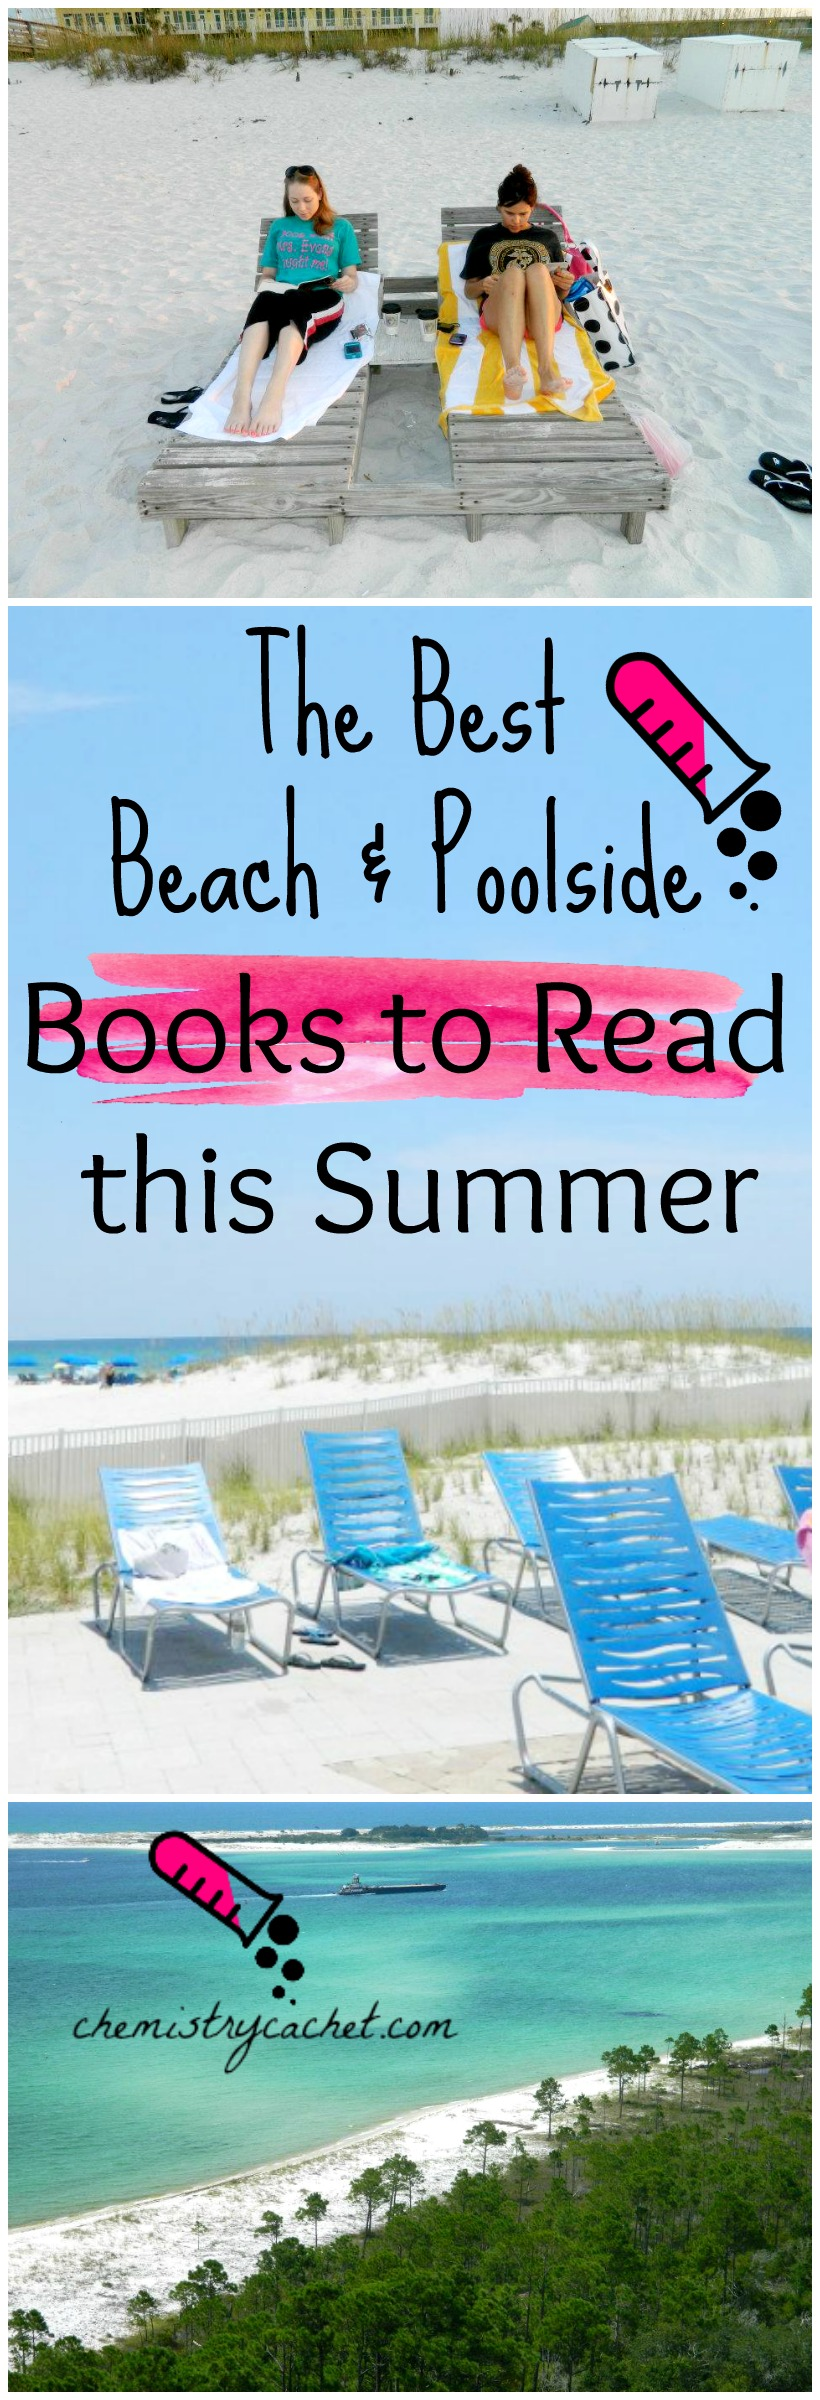 The Best Beach & Poolside Books to Read this Summer on chemistrycachet.com